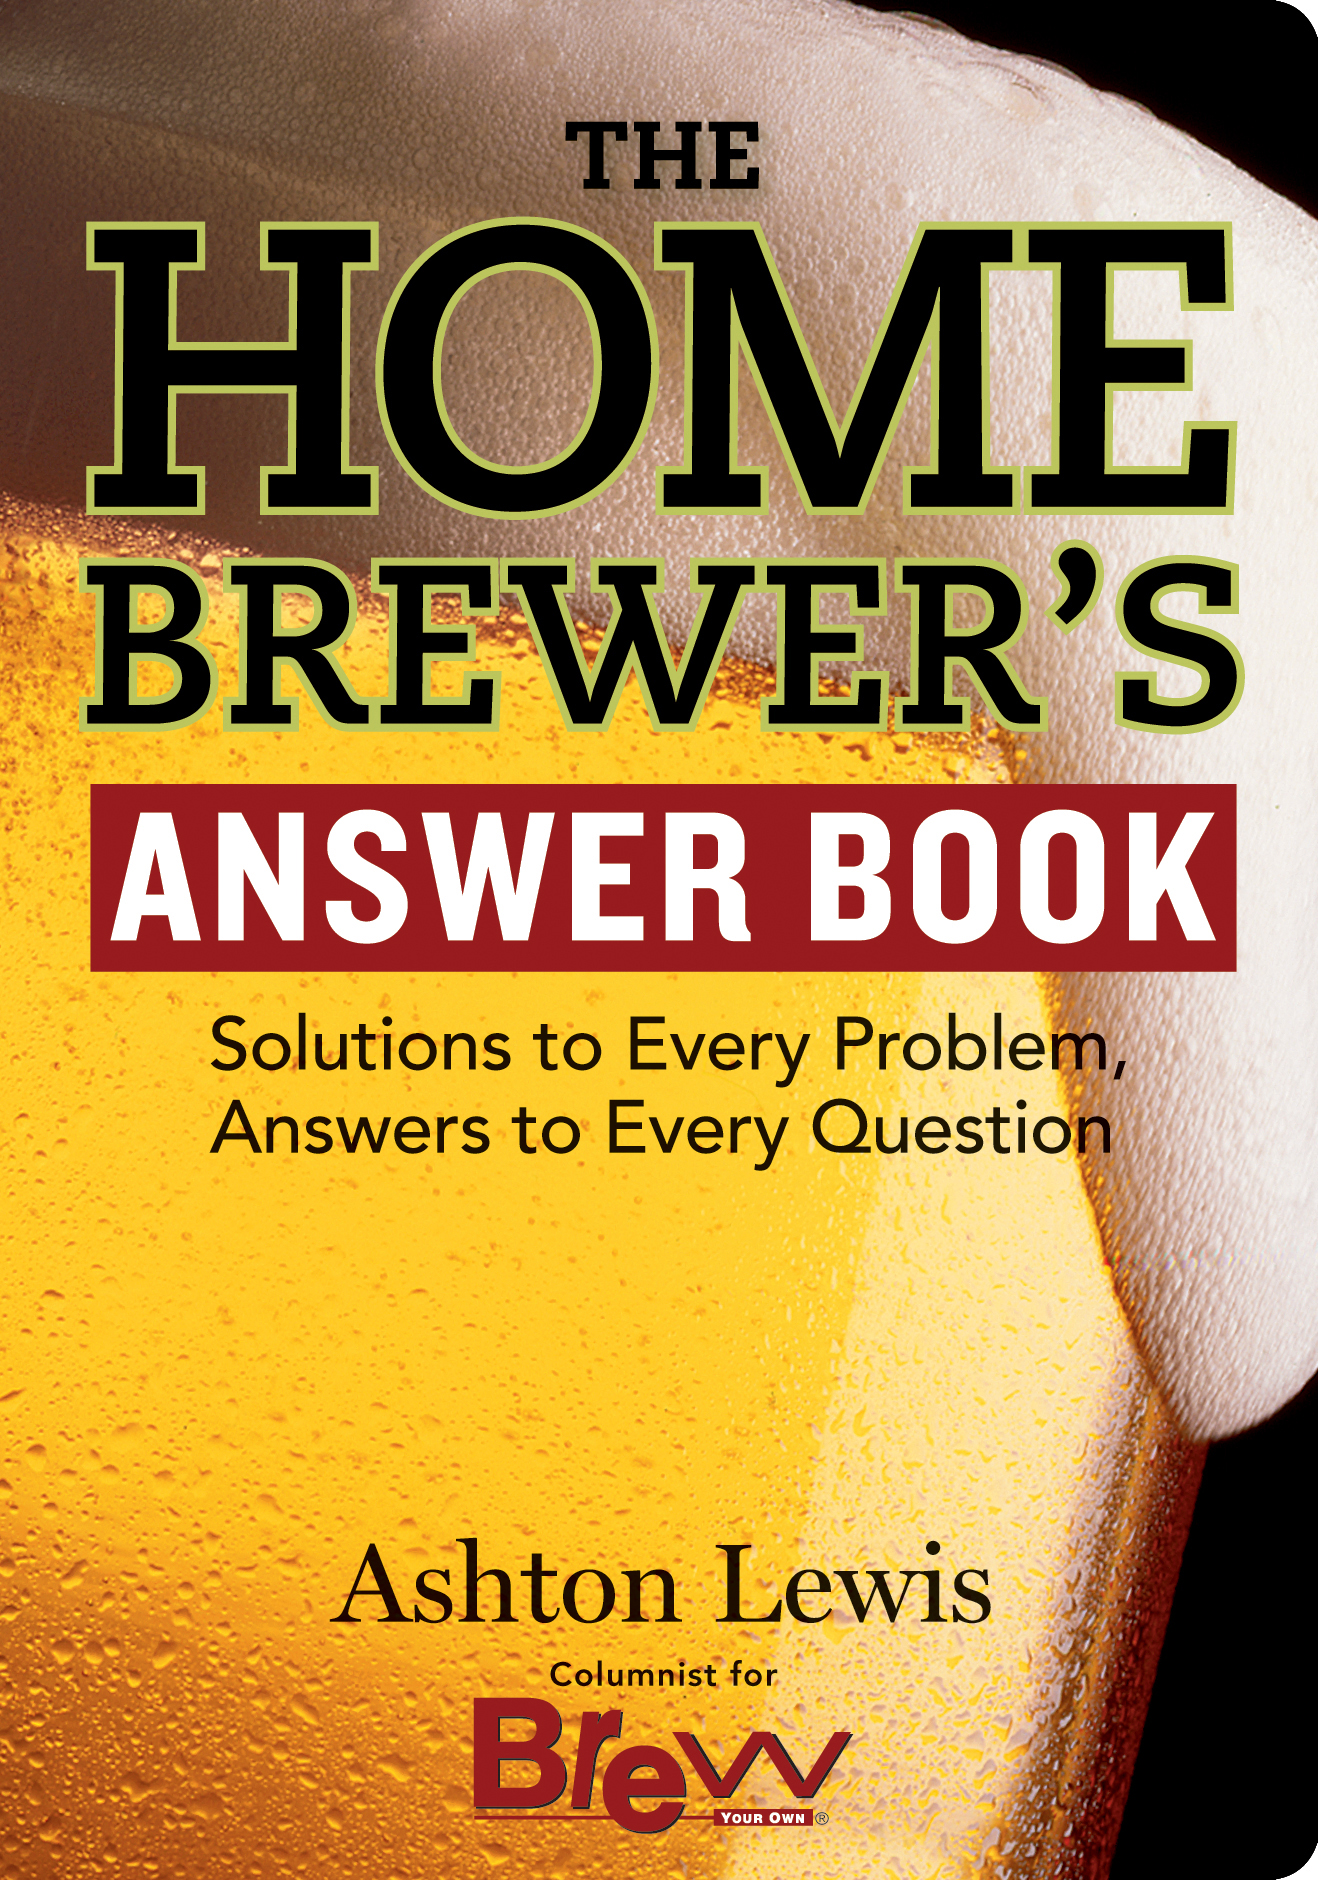 The Homebrewer's Answer Book Solutions to Every Problem, Answers to Every Question - Ashton Lewis